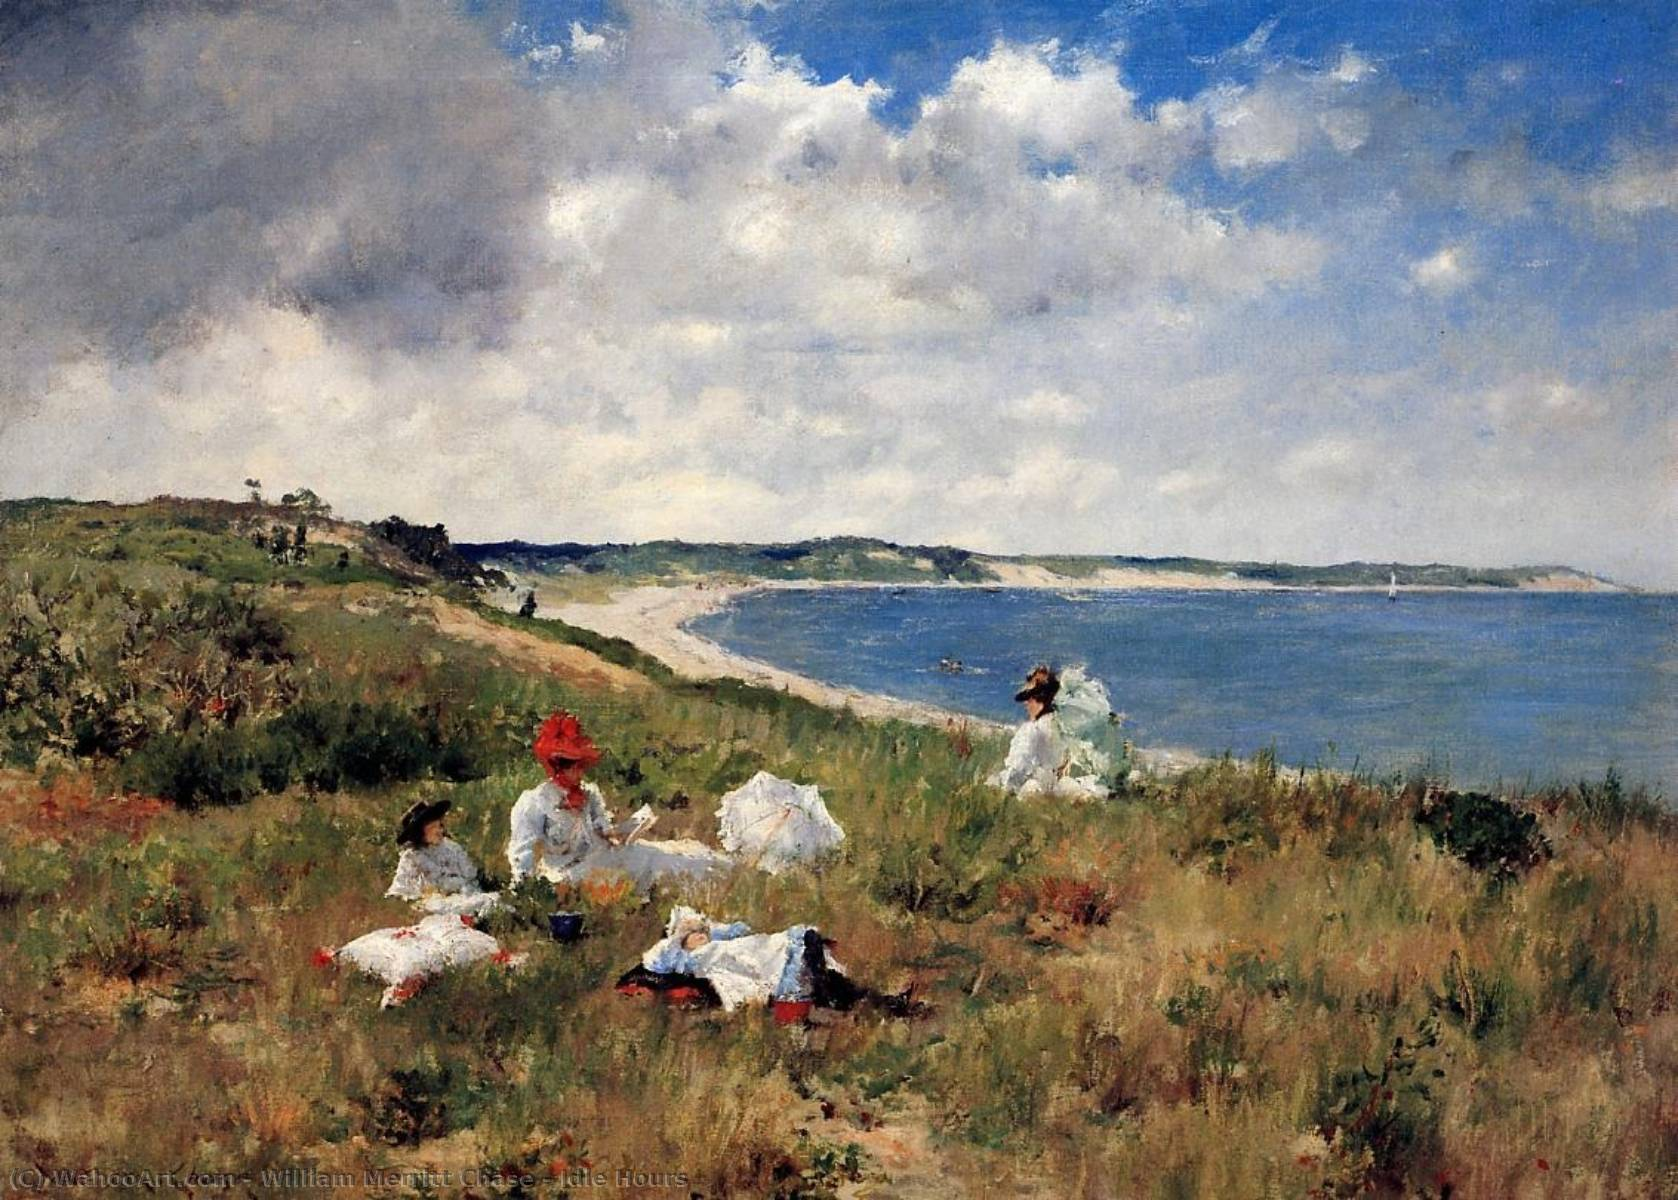 Horas ociosas, óleo sobre lienzo de William Merritt Chase (1849-1916, United States)